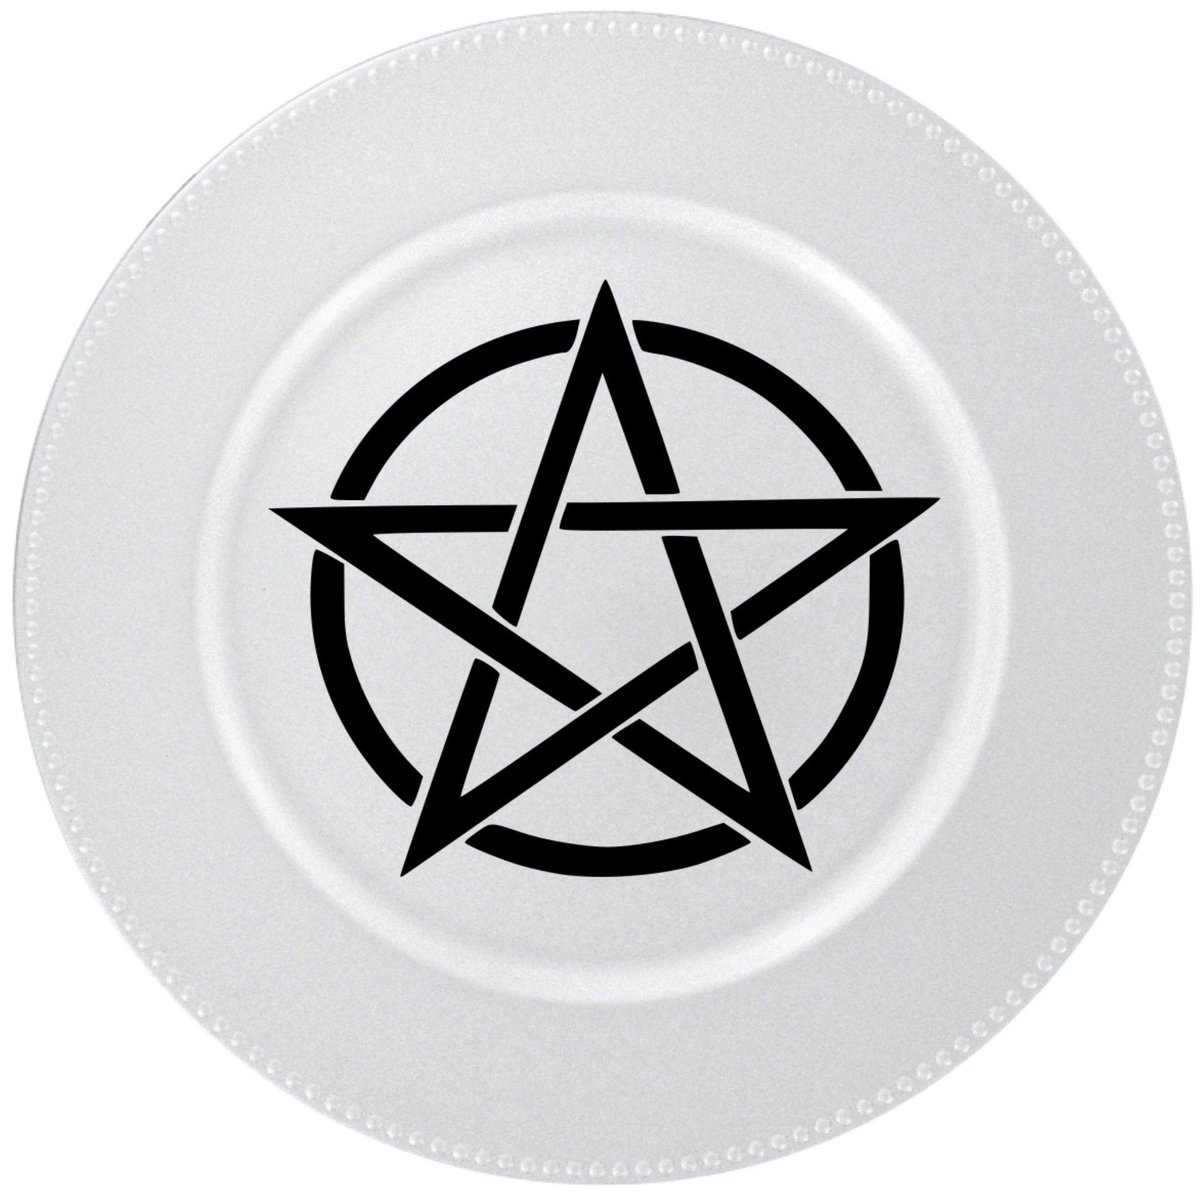 "Excited to share the latest addition to my #etsy shop: Pentagram Metallic Silver Charger Plate 13"" Round- Beaded Rim Decorative Plate-Home Decor-Table Decor- Altar Decor https://t.co/I9e2J2kaHE #wickedvillage #pentagram #decorativeplate #pentagramdecor #MakeItMeanigful https://t.co/Ax6vR5QTSh"